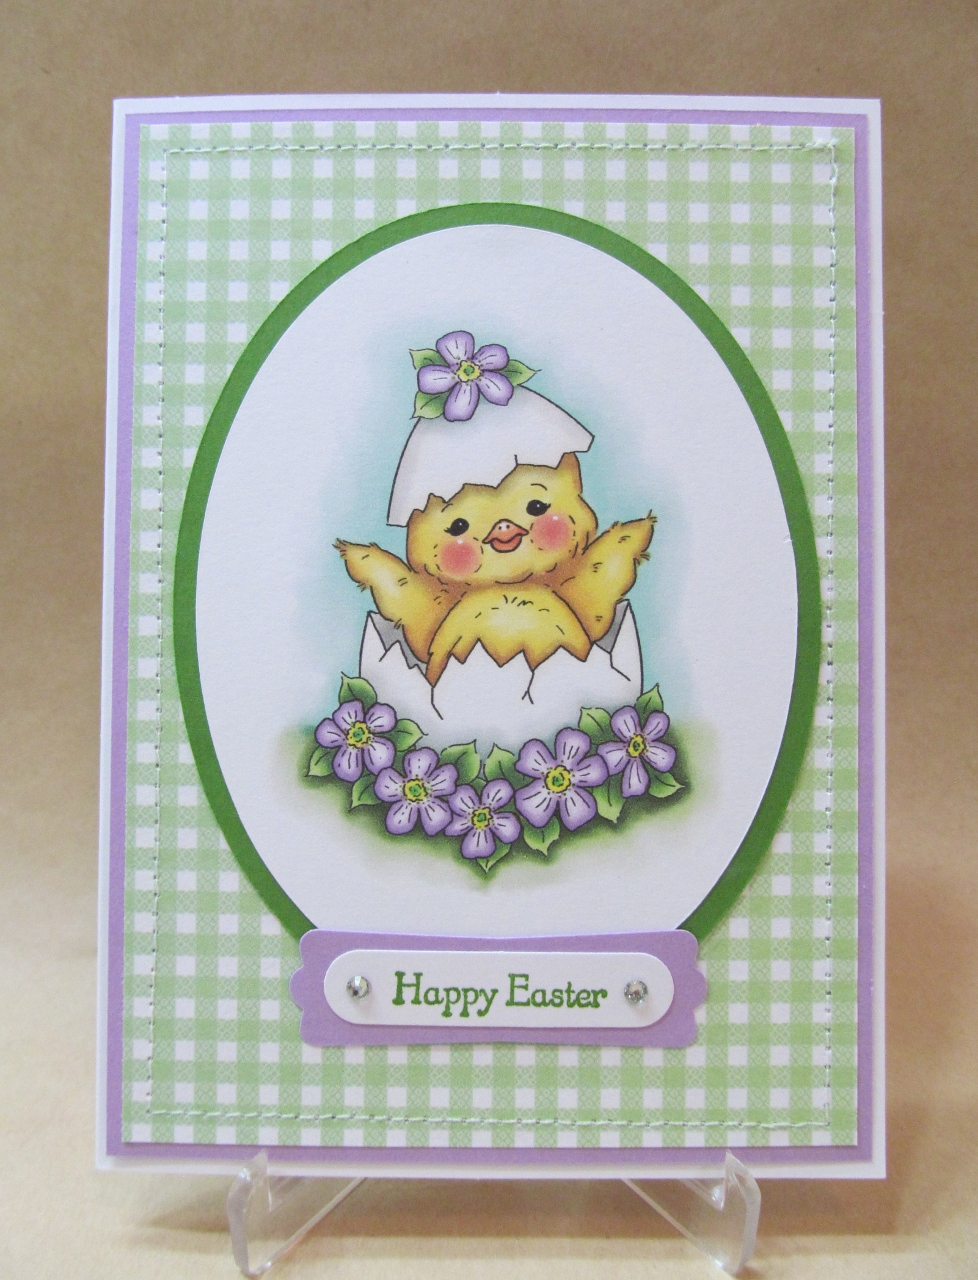 Savvy handmade cards simple easter card last night i finished all the easter cards i needed to make the last card i created was this simple easter card there are no fancy embellishments but i m4hsunfo